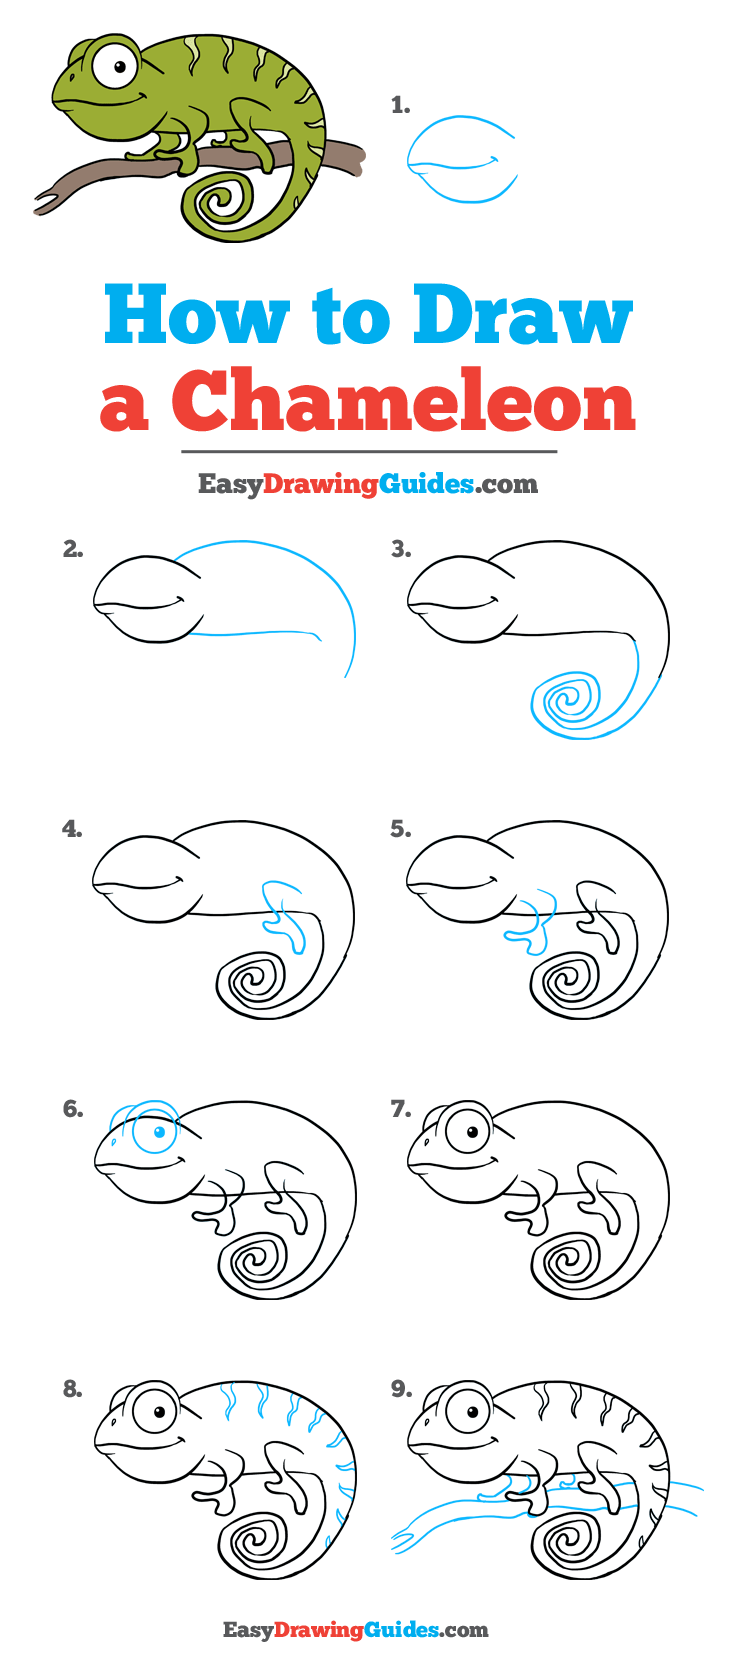 How to Draw a Chameleon: Step by Step Tutorial